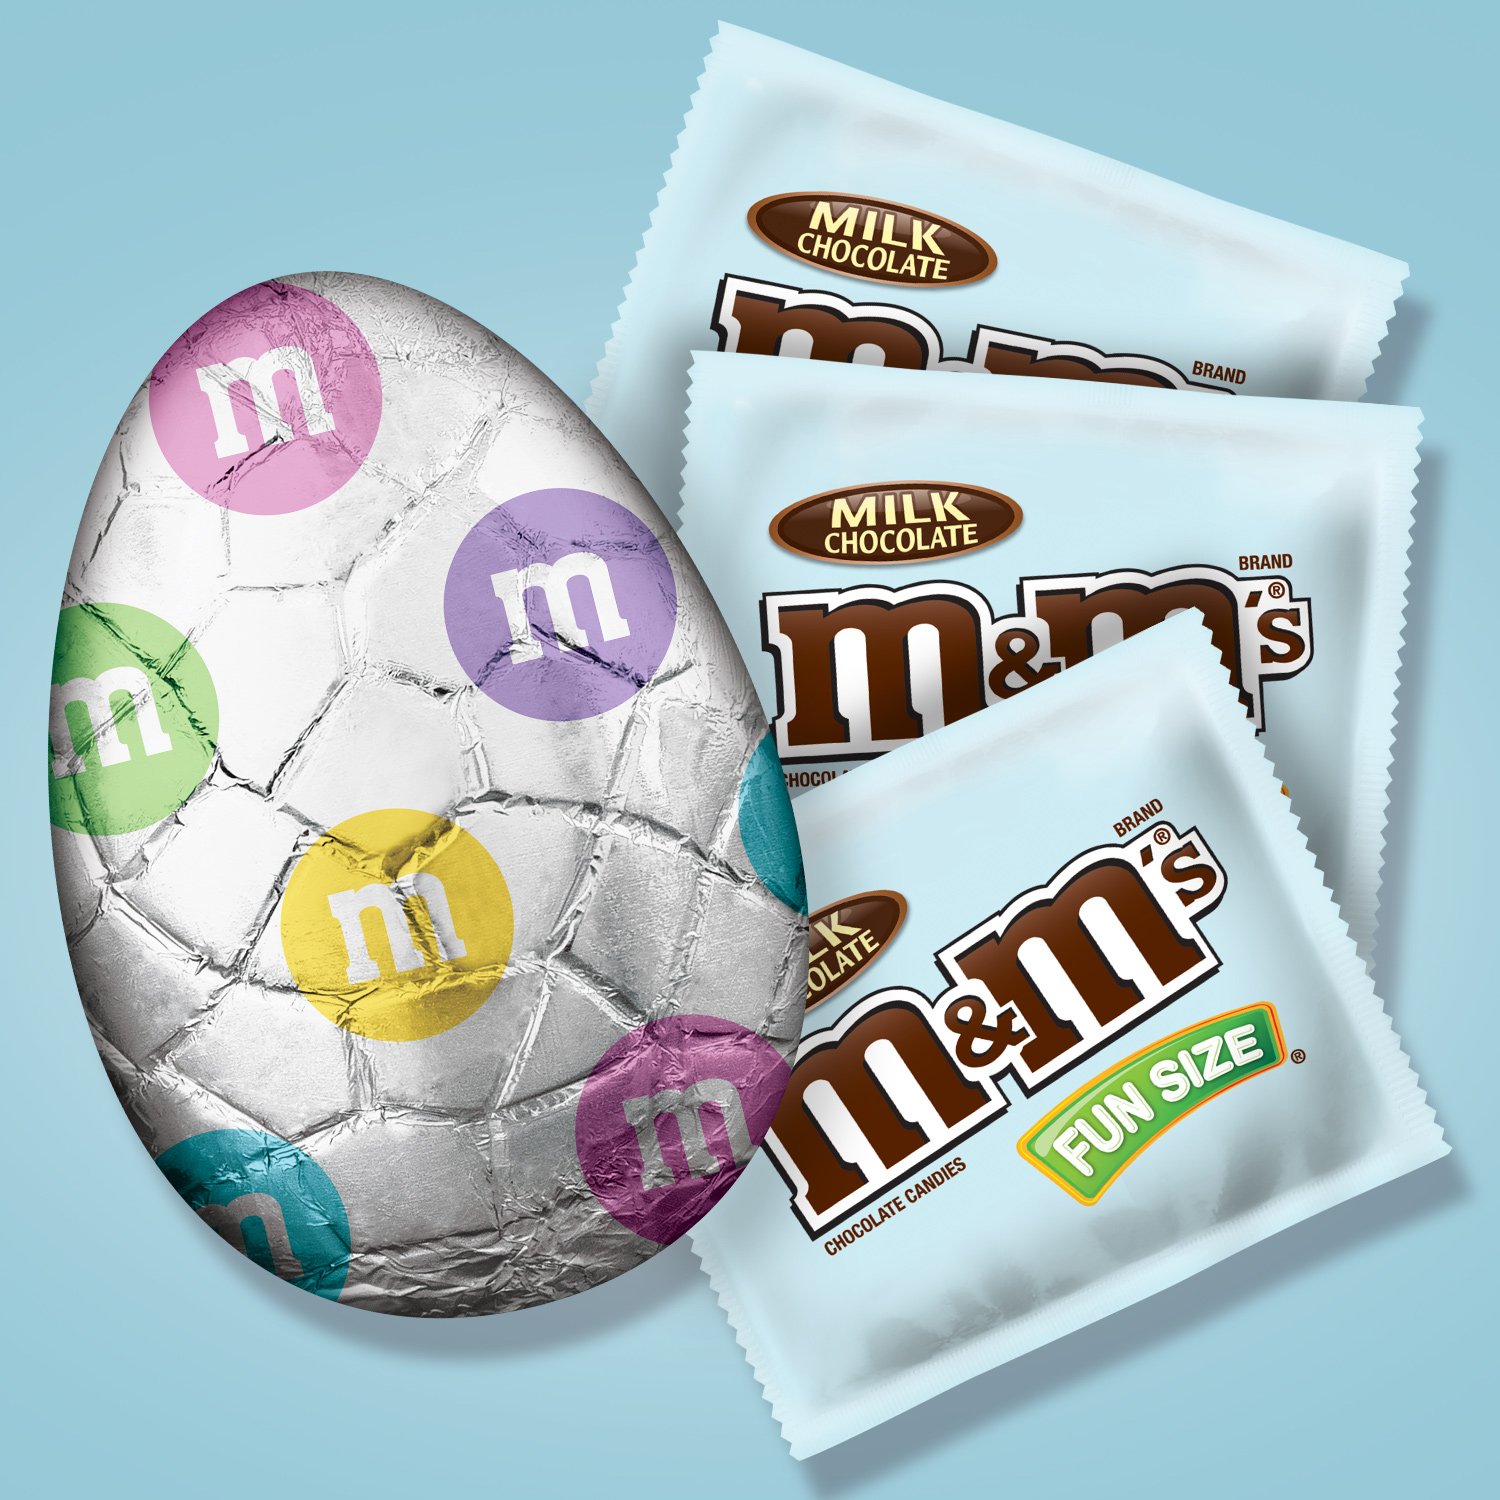 Chocolate Easter egg filled with packages of M&M's